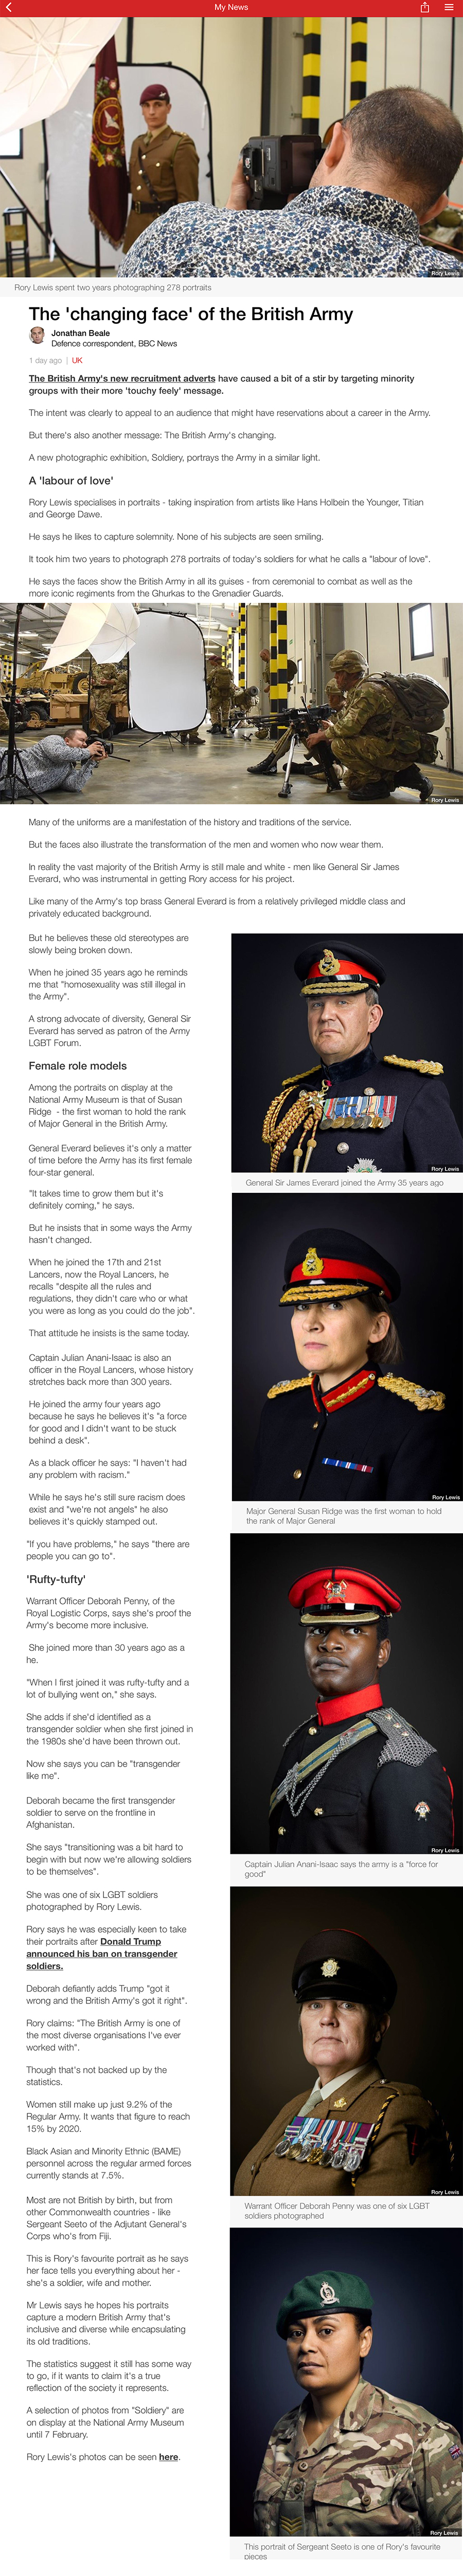 BBC News Interview (The 'changing face' of the British Army) 3rd February 2018 Rory Lewis Photographer